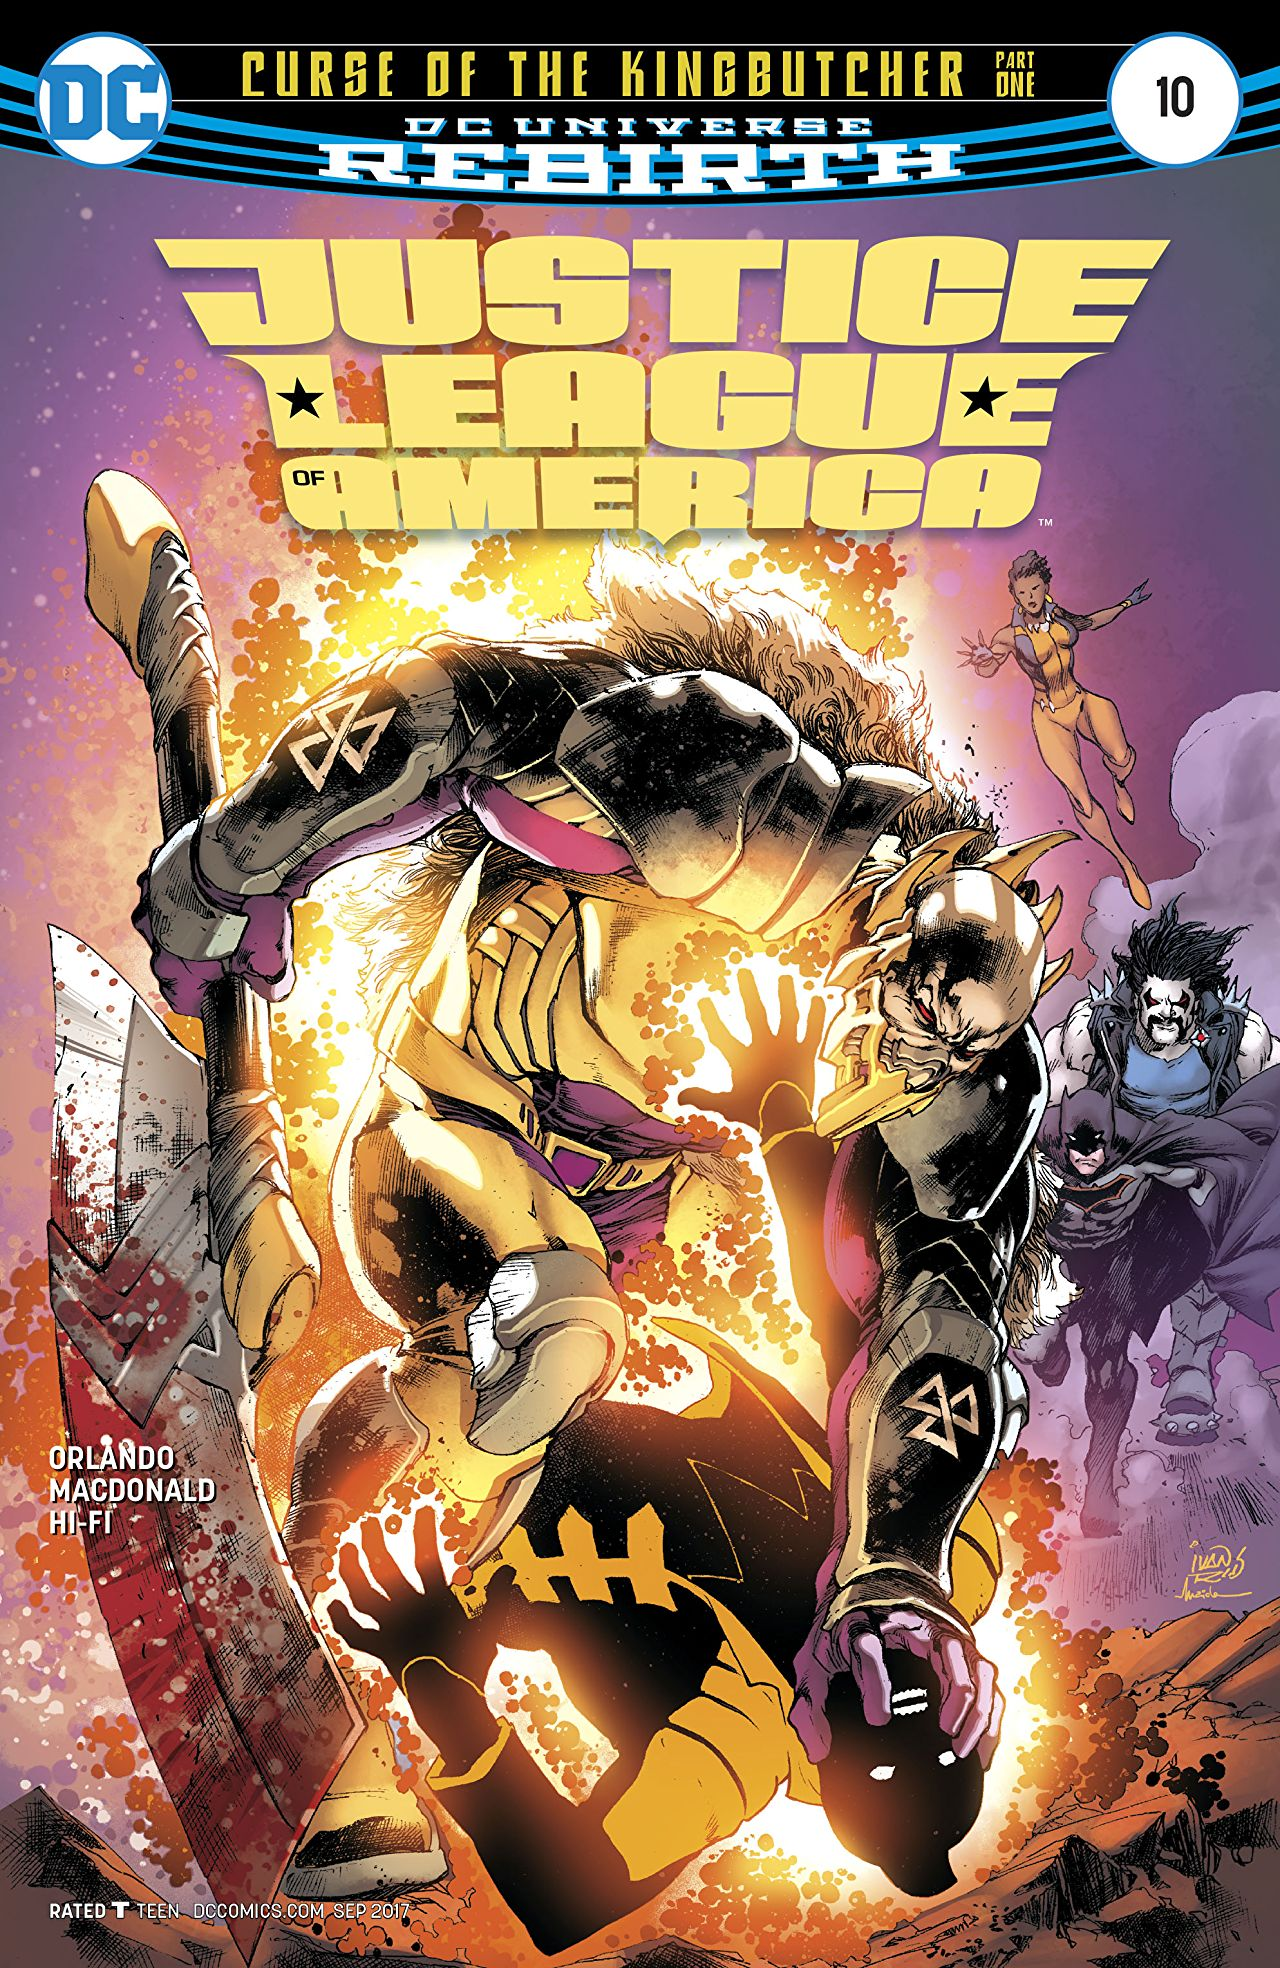 review JUSTICE LEAGUE OF AMERICA #10